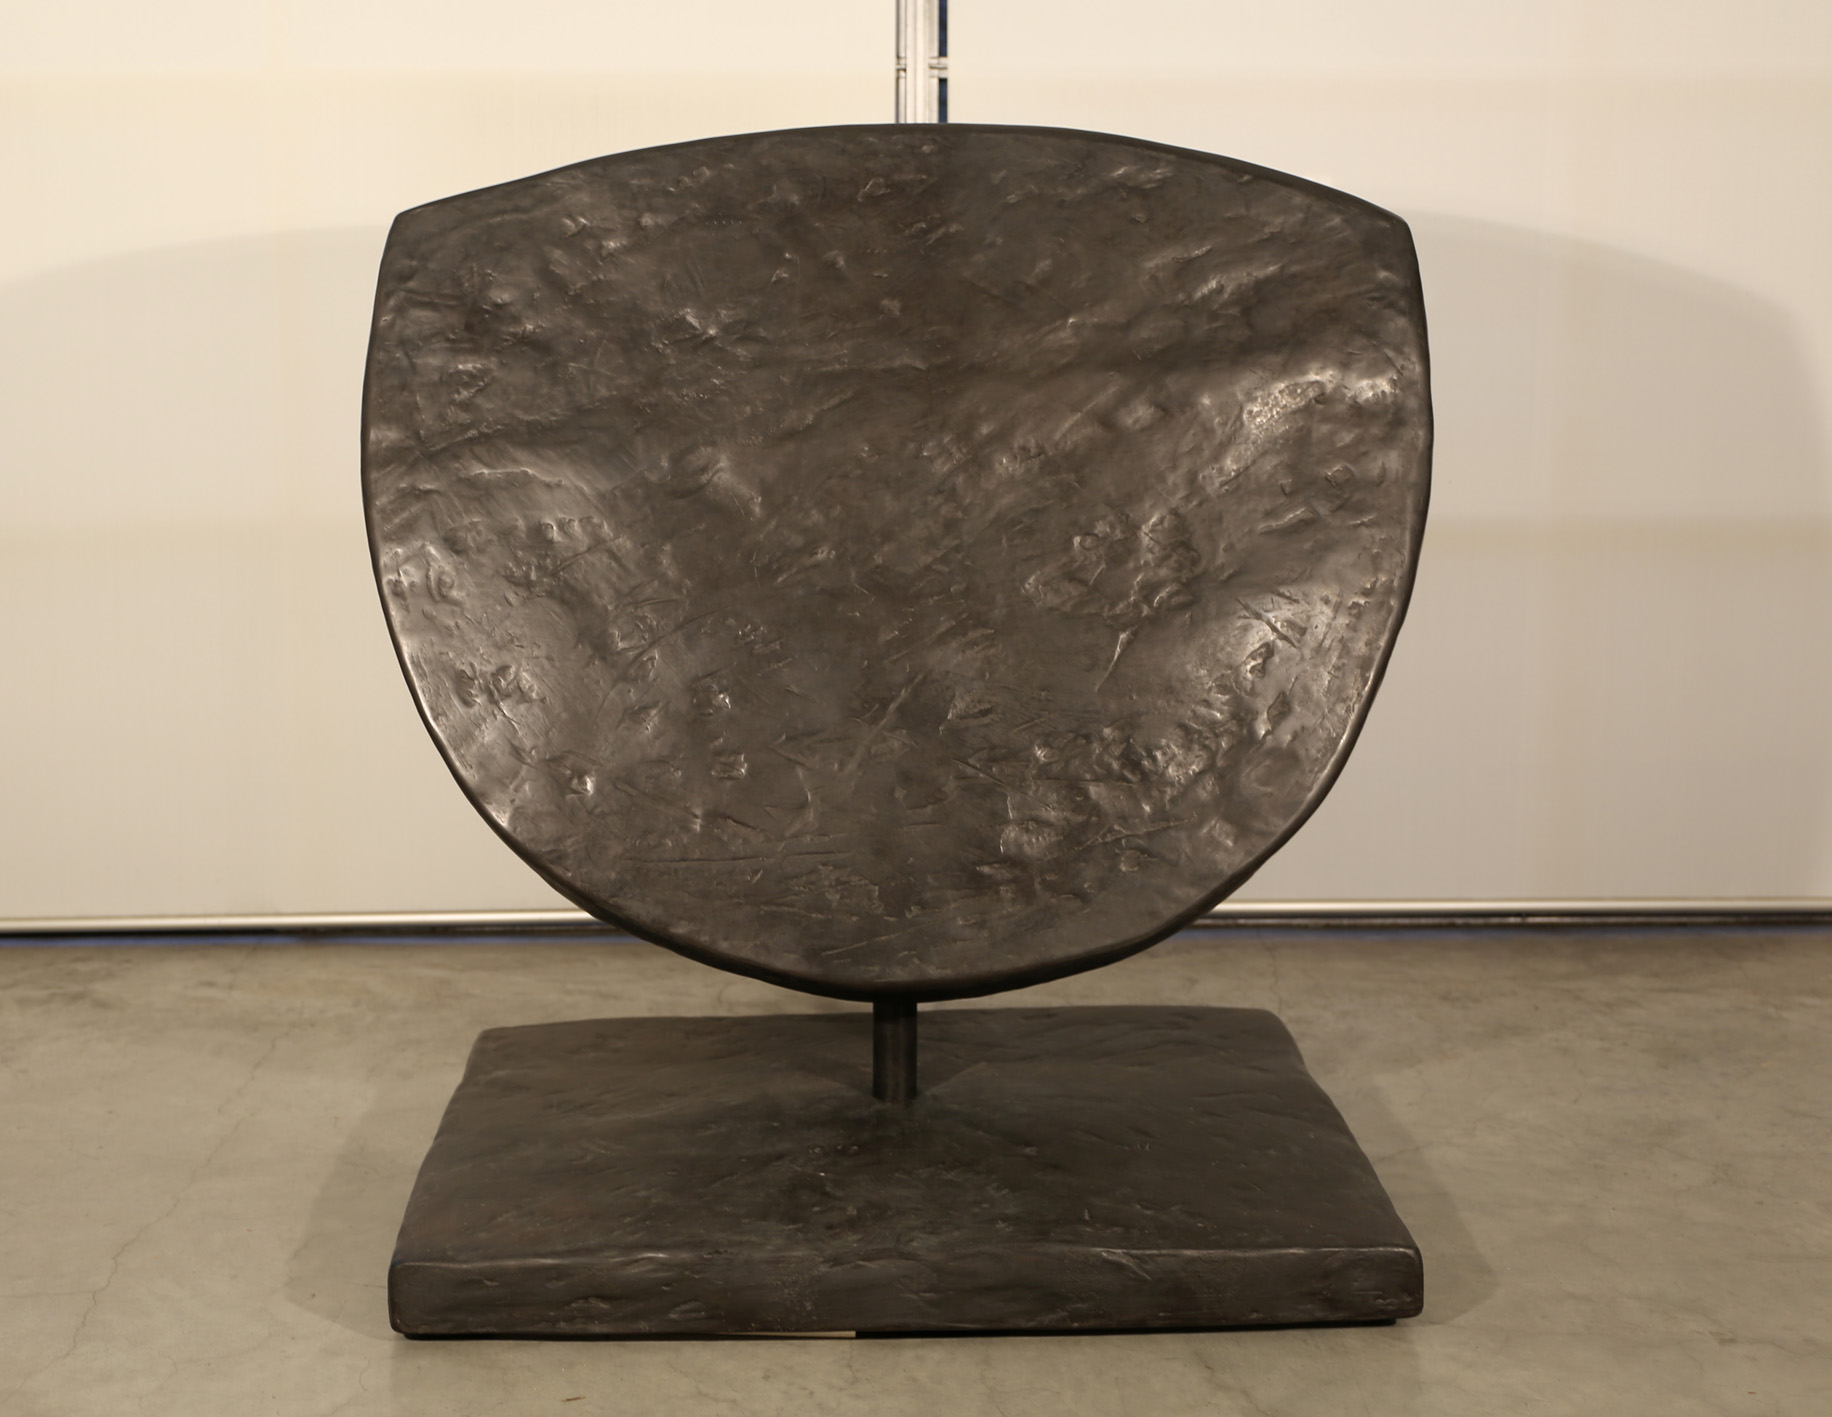 Marea Gazzard   Selini I , 2009  bronze, black patina, edition 5 of 5  100 x 97 x 63 cm